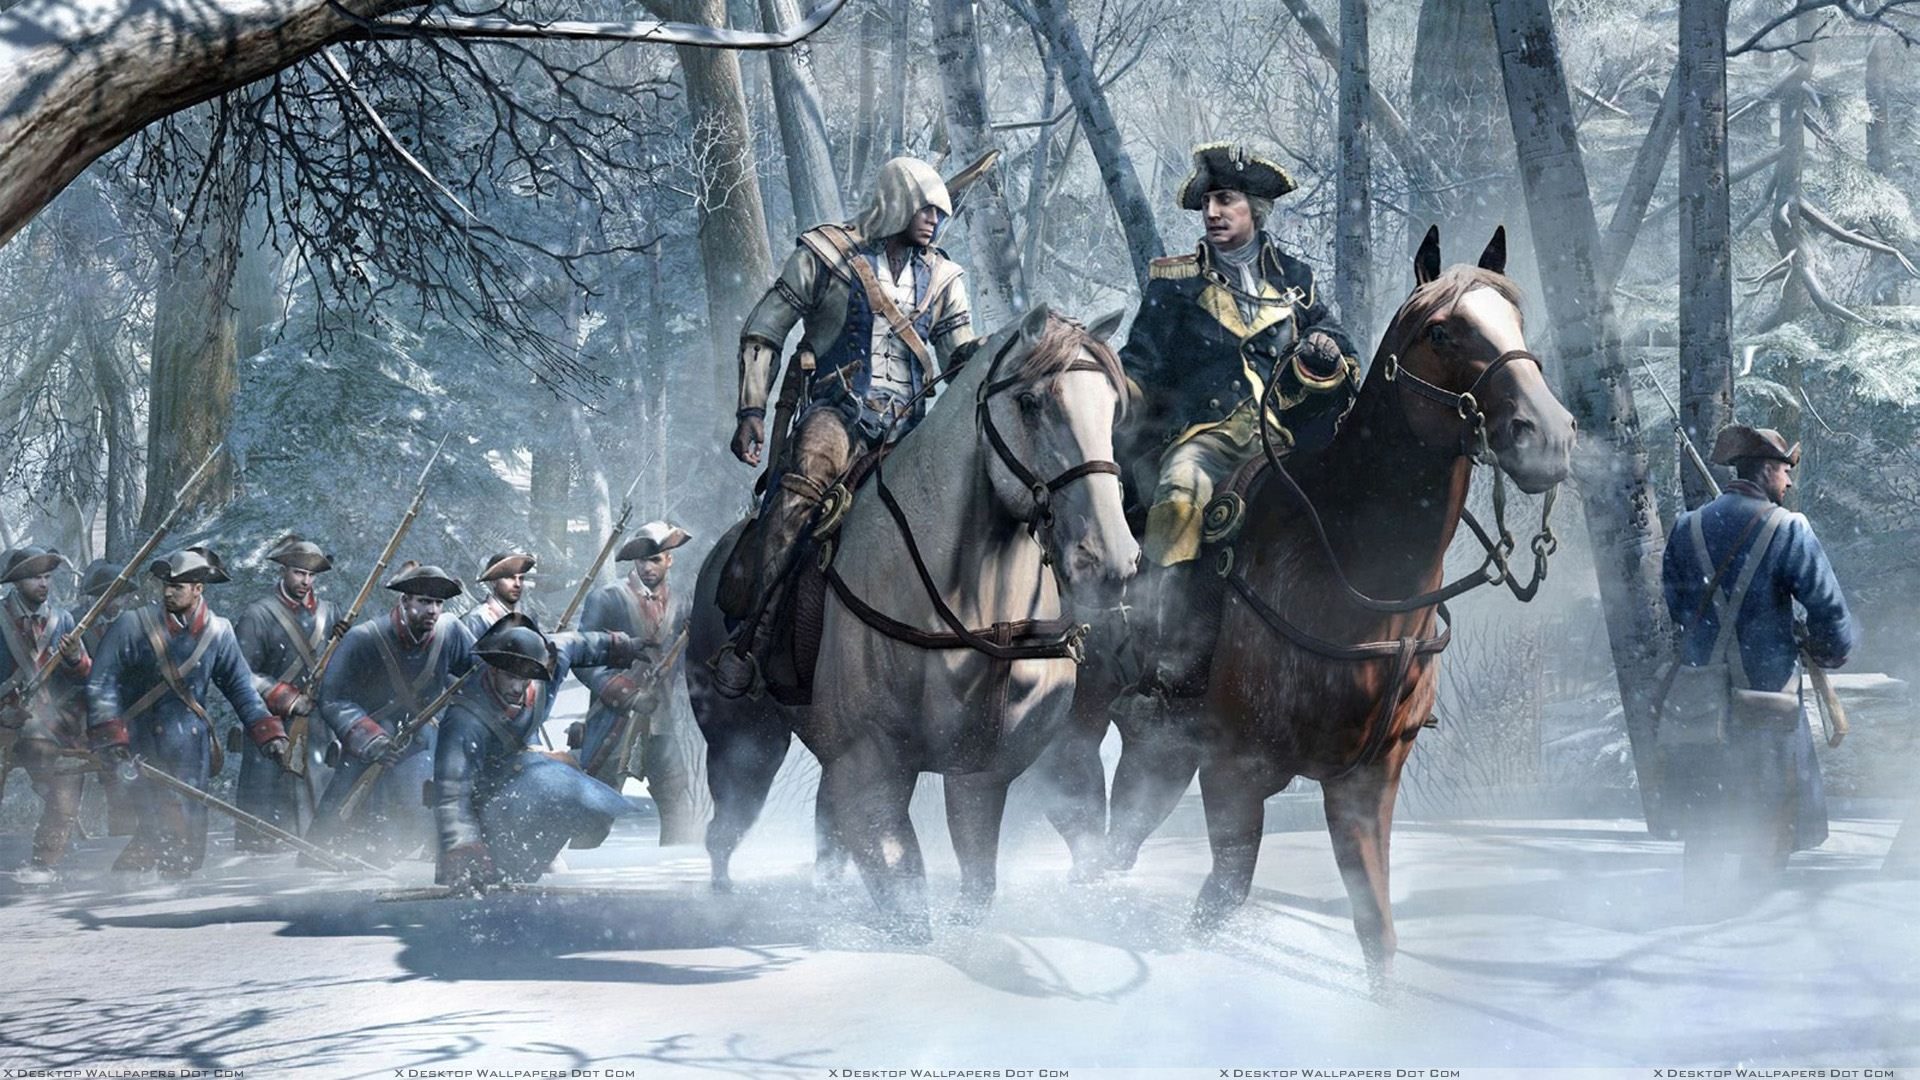 Assassins creed 3 wallpapers photos images in hd categories games tags assassins creed 3 share the wallpaper voltagebd Gallery